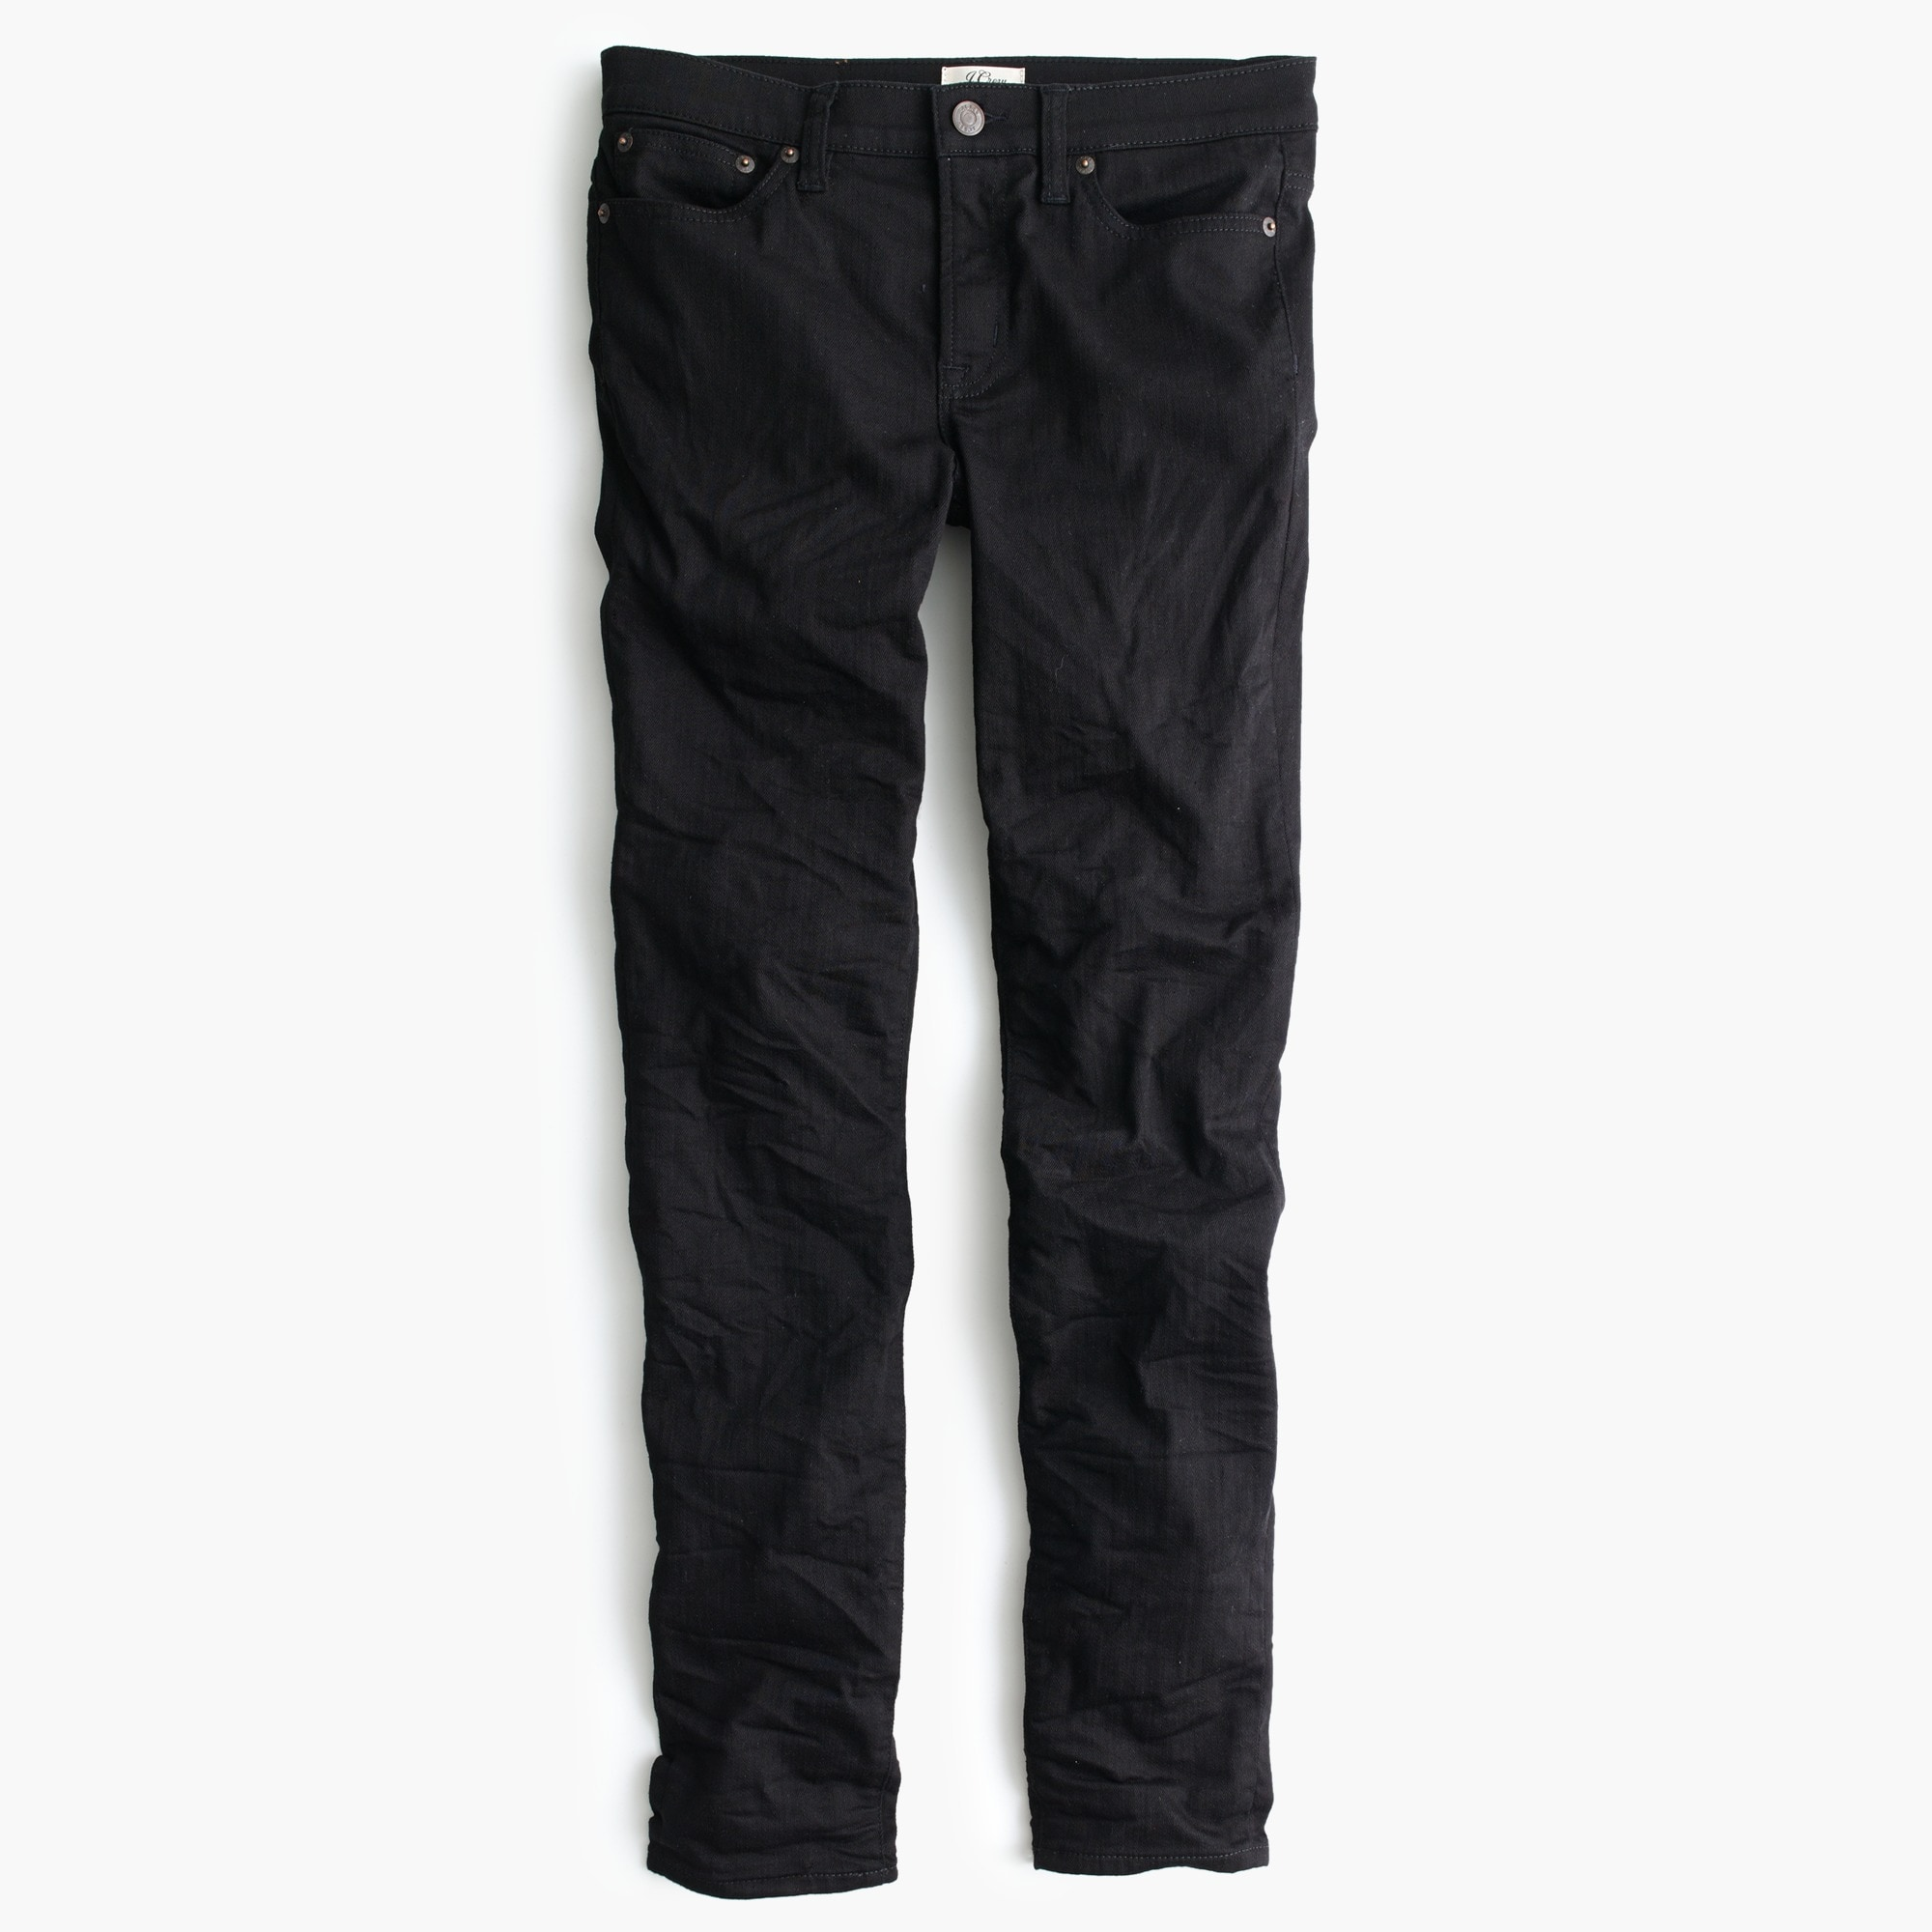 "Tall 8"" toothpick jean in black"